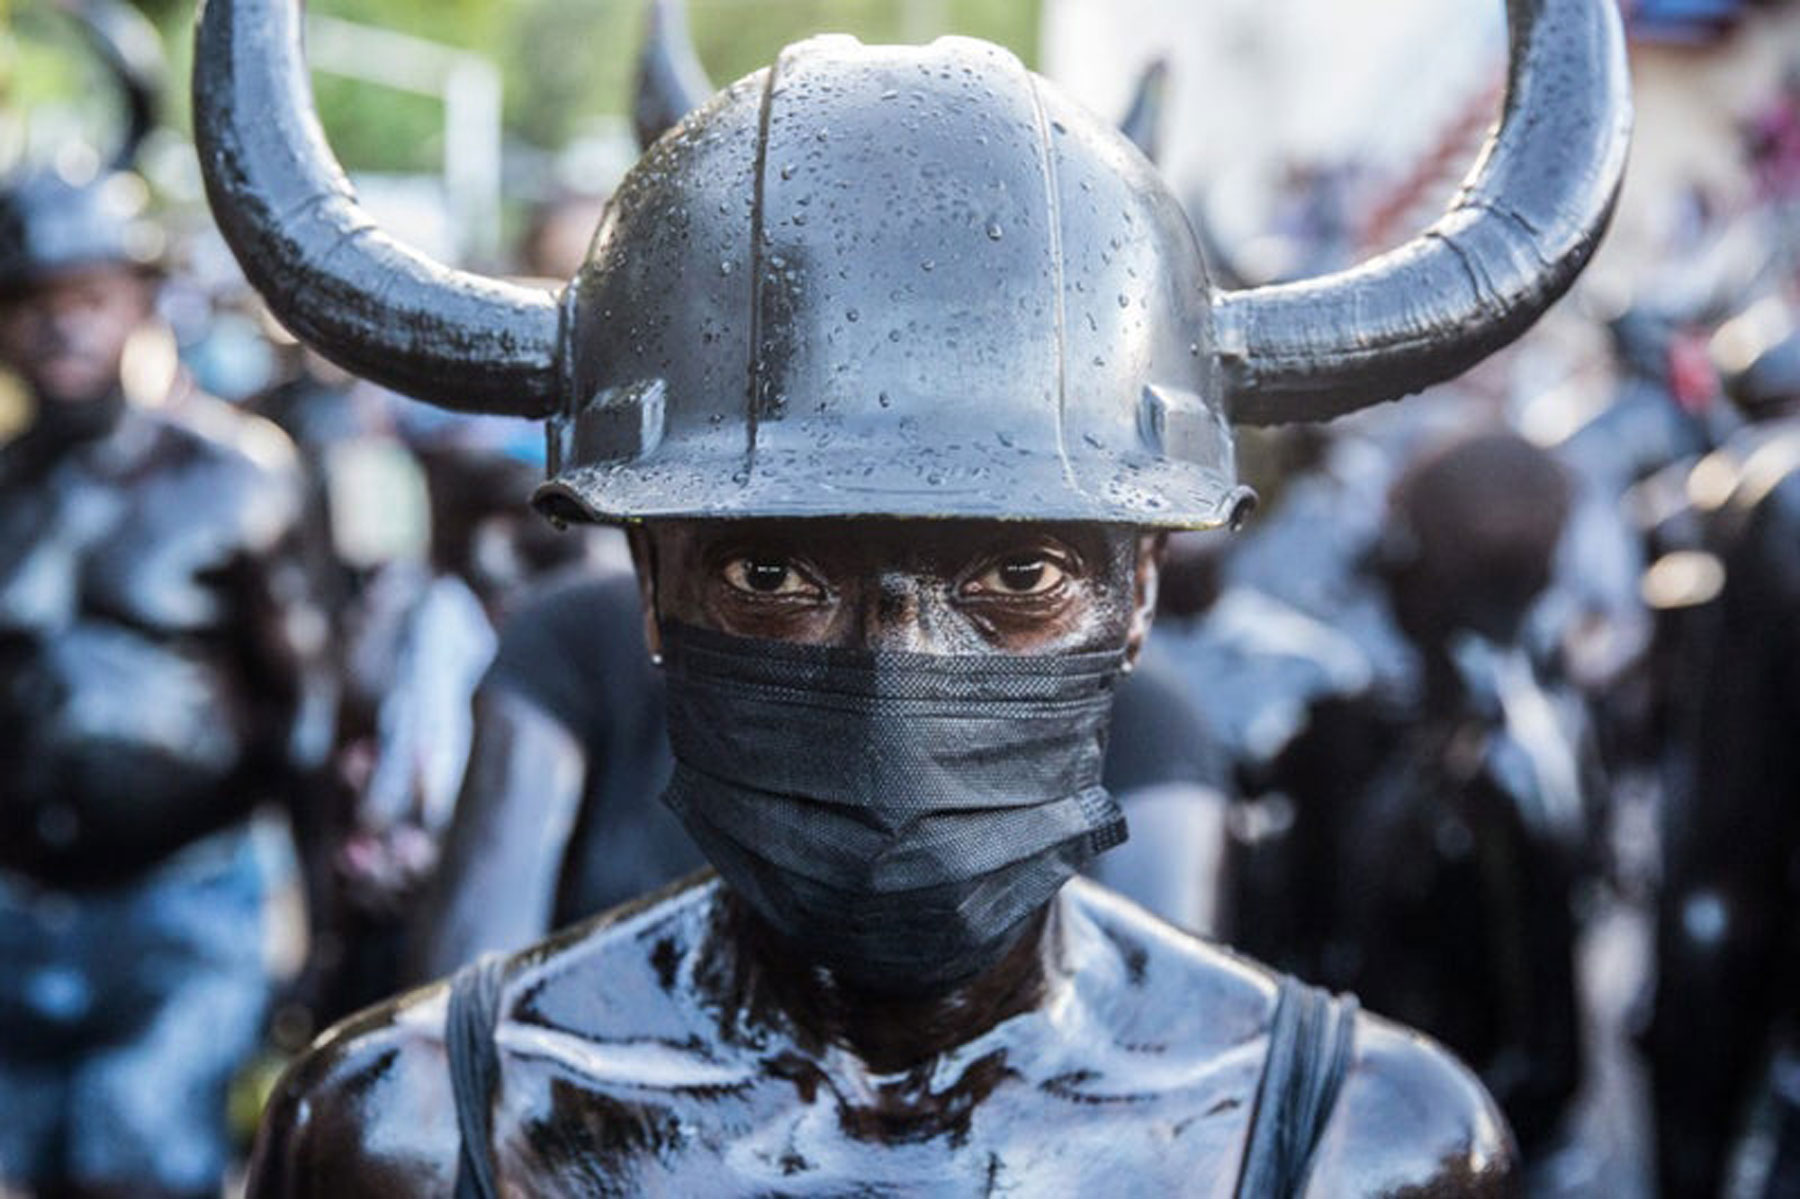 man looking straight at camera in black helmet with horns